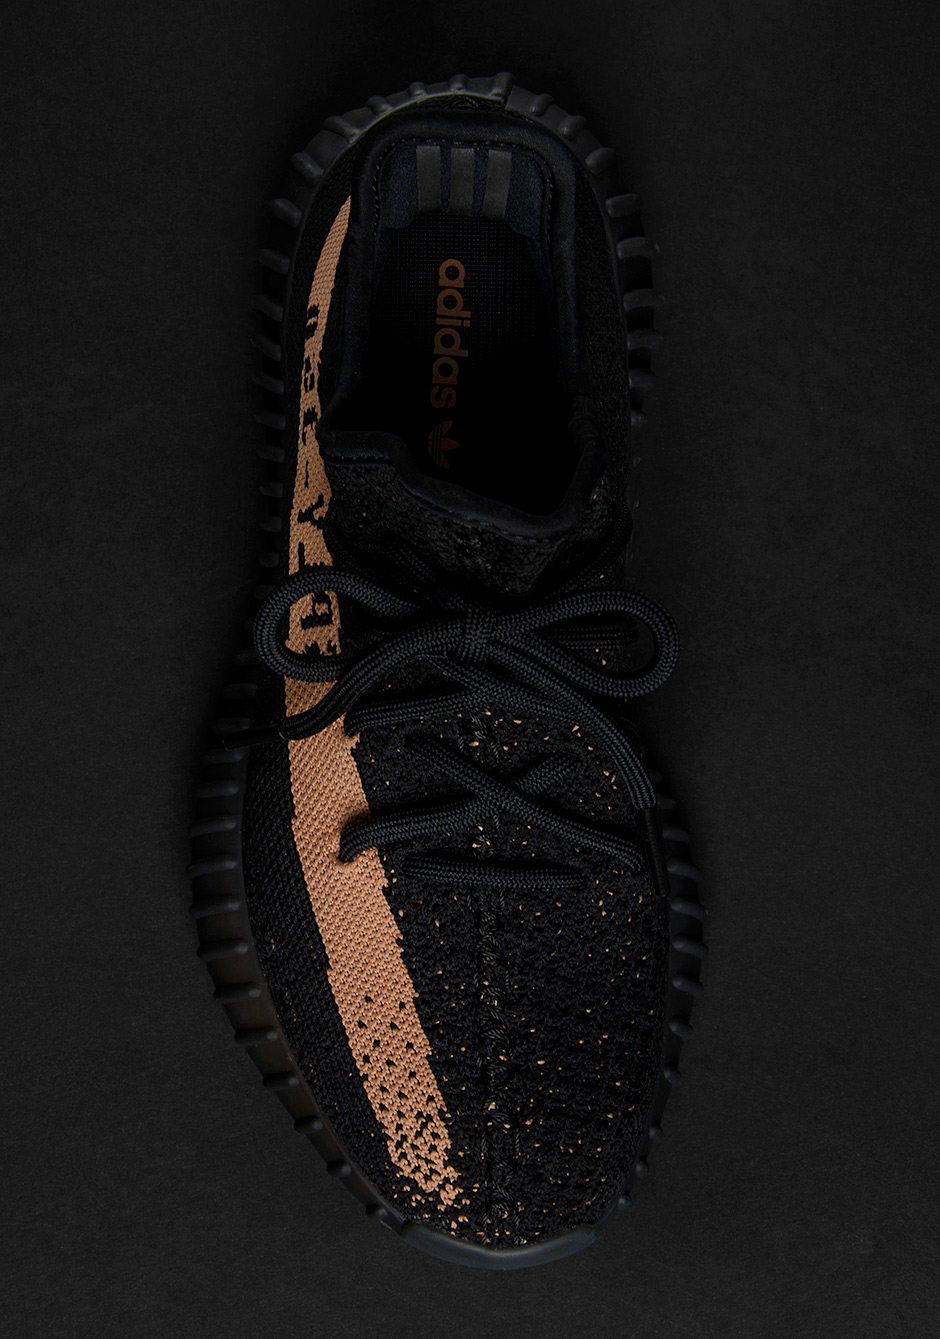 Adidas Yeezy Boost 350 V2 'Copper' BY1605 Size 10 Sneakers